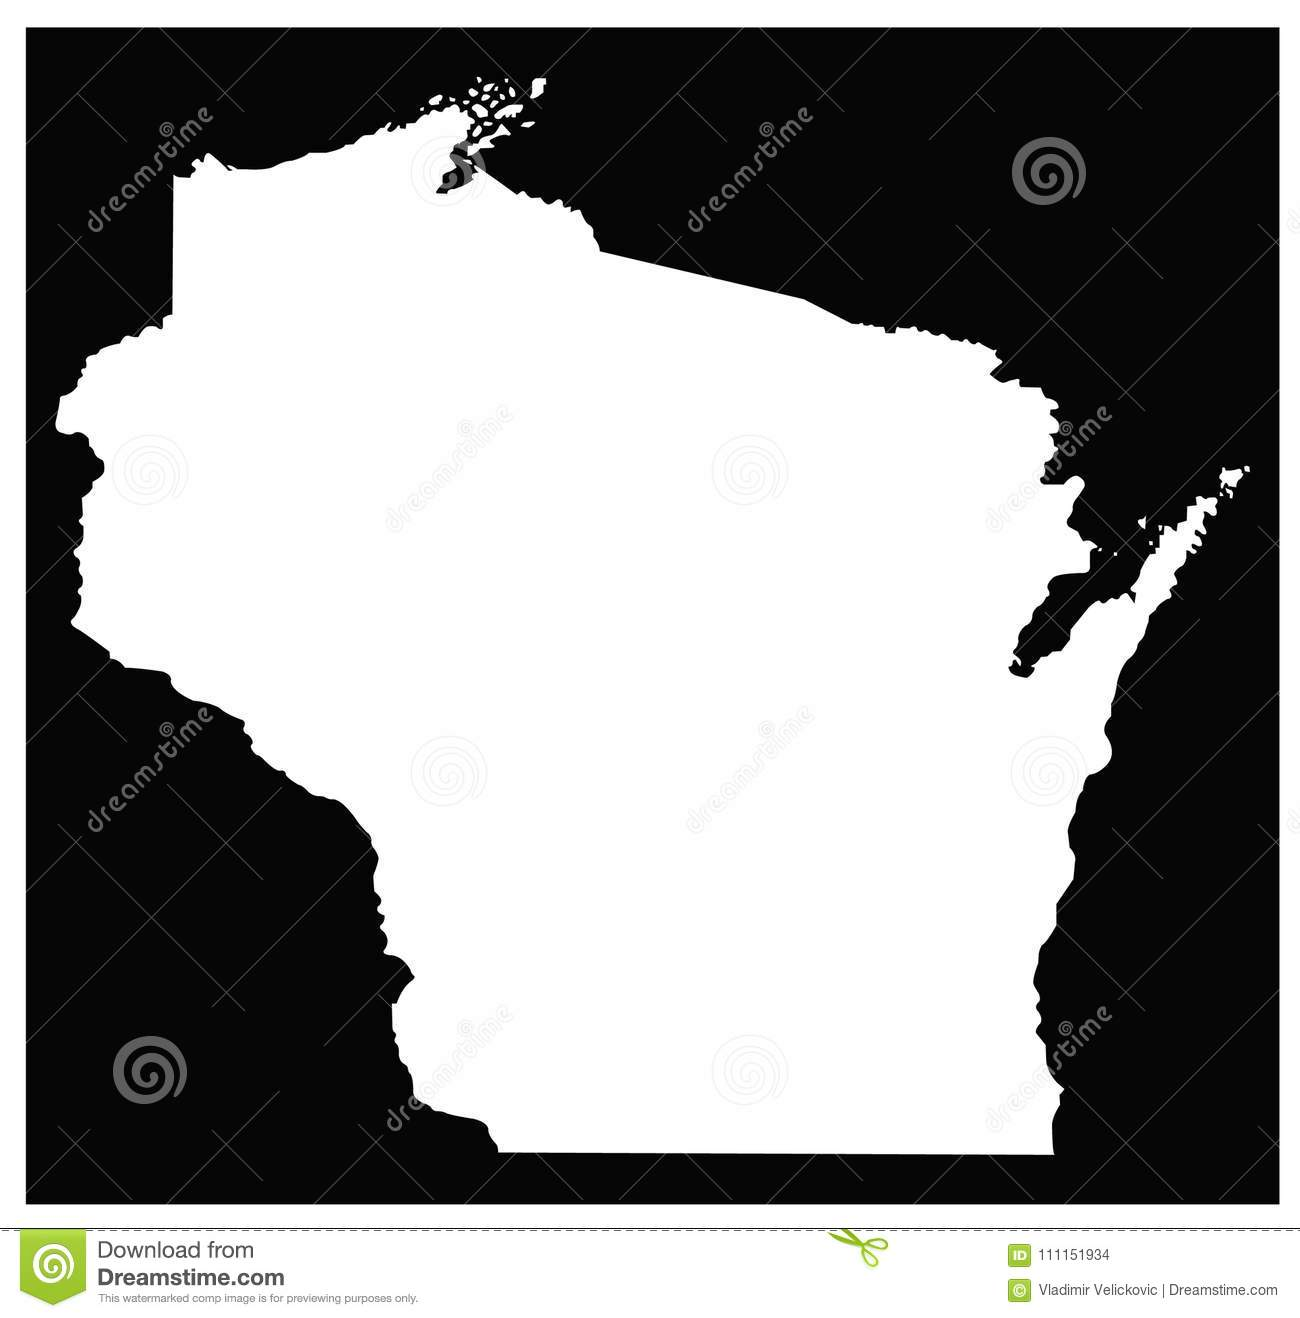 Milwaukee State Map.Wisconsin Map State In The North Central United States Stock